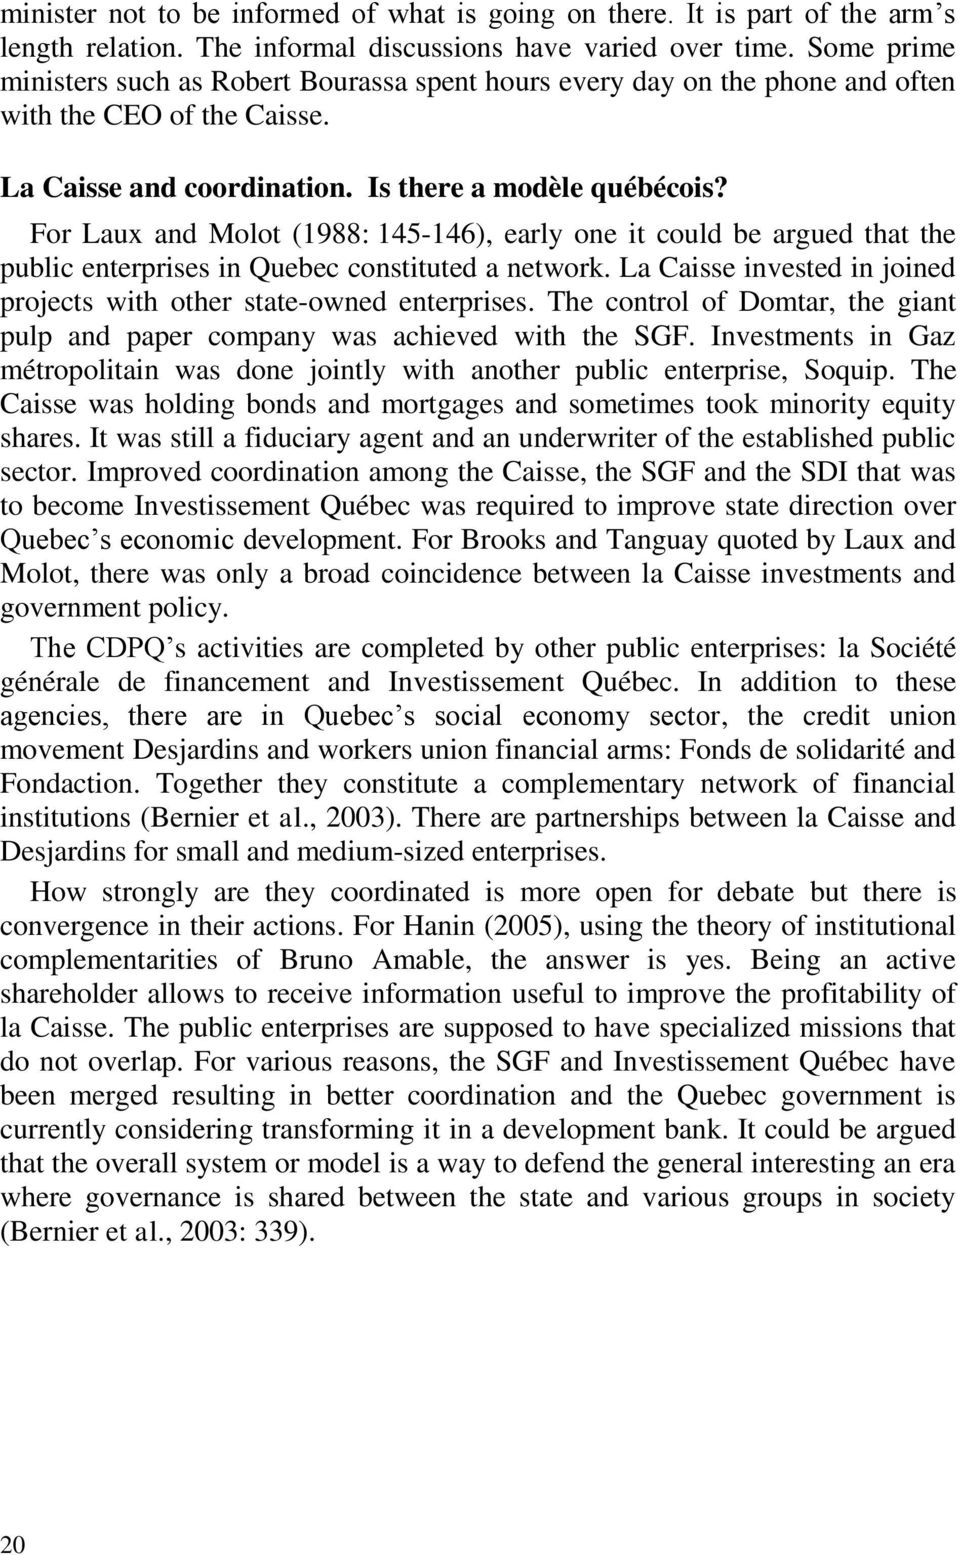 For Laux and Molot (1988: 145-146), early one it could be argued that the public enterprises in Quebec constituted a network. La Caisse invested in joined projects with other state-owned enterprises.